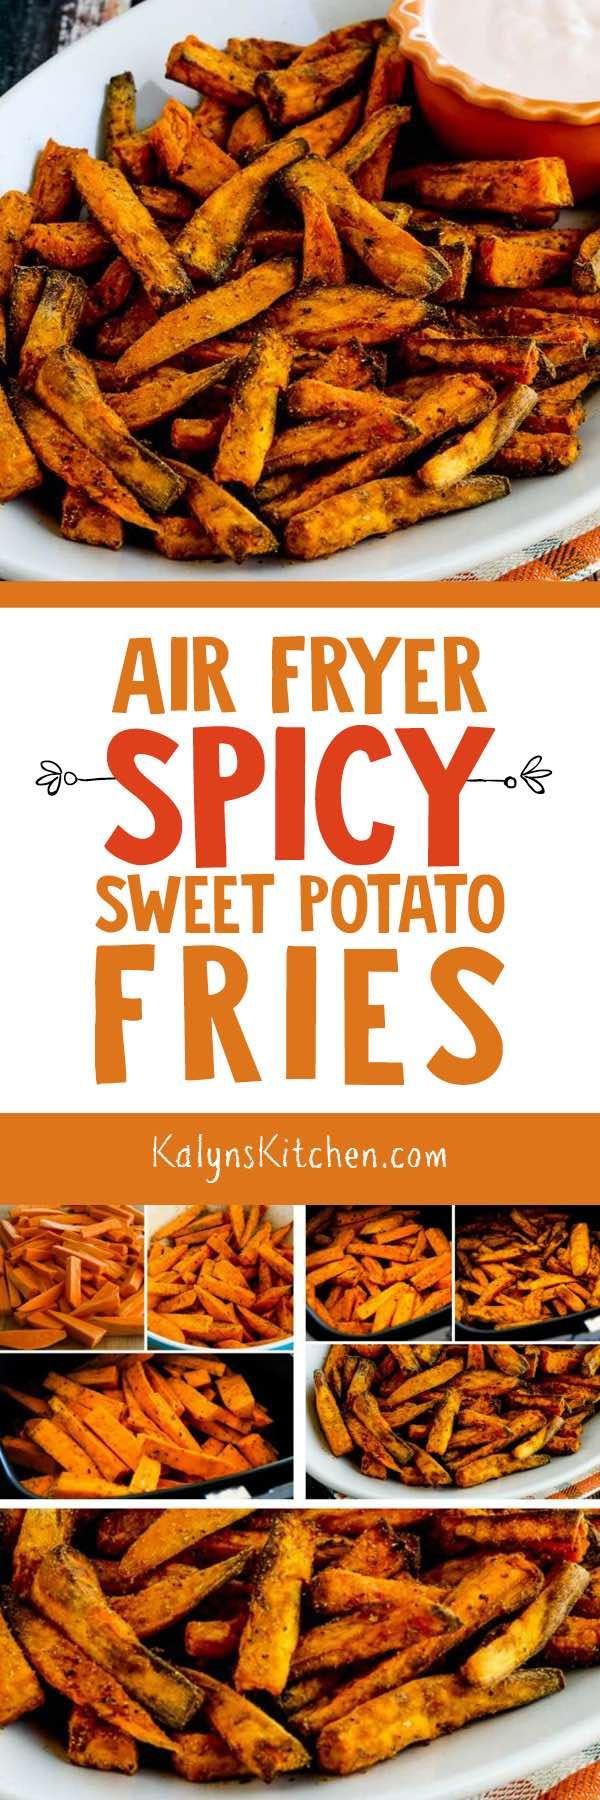 Air Fryer Spicy Sweet Potato Fries are absolutely a WOW, especially is you eat them with my Spicy Dipping Sauce with Sriracha. There's also a link to Spicy Baked Sweet Potato Fries if you're not interested in getting an air fryer! [found on KalynsKitchen.com] #AirFryer #SweetPotatoFries #AirFryerSweetPotatoFries #AirFryerSpicySweetPotatoFries #SpicySweetPotatoFries